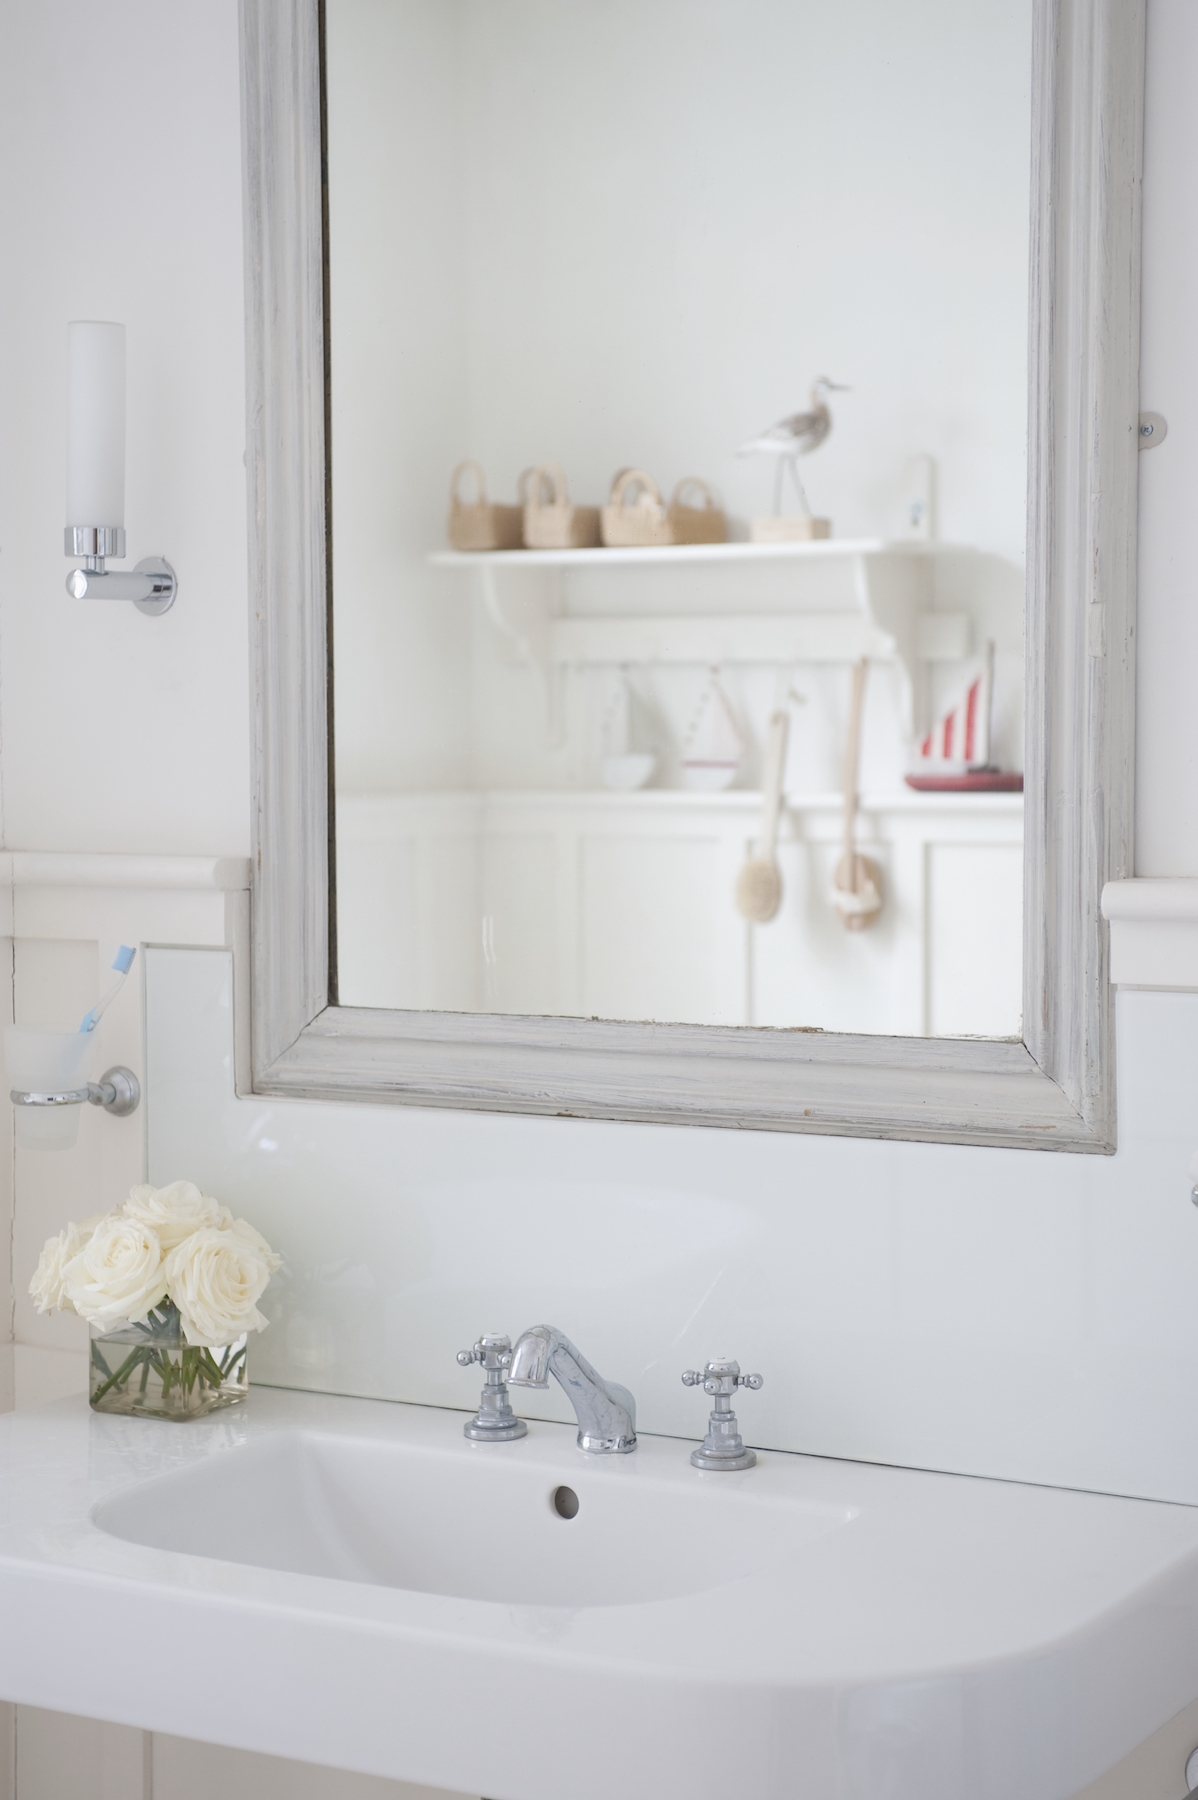 How to Clean Bathroom Sink, white bathroom with roses